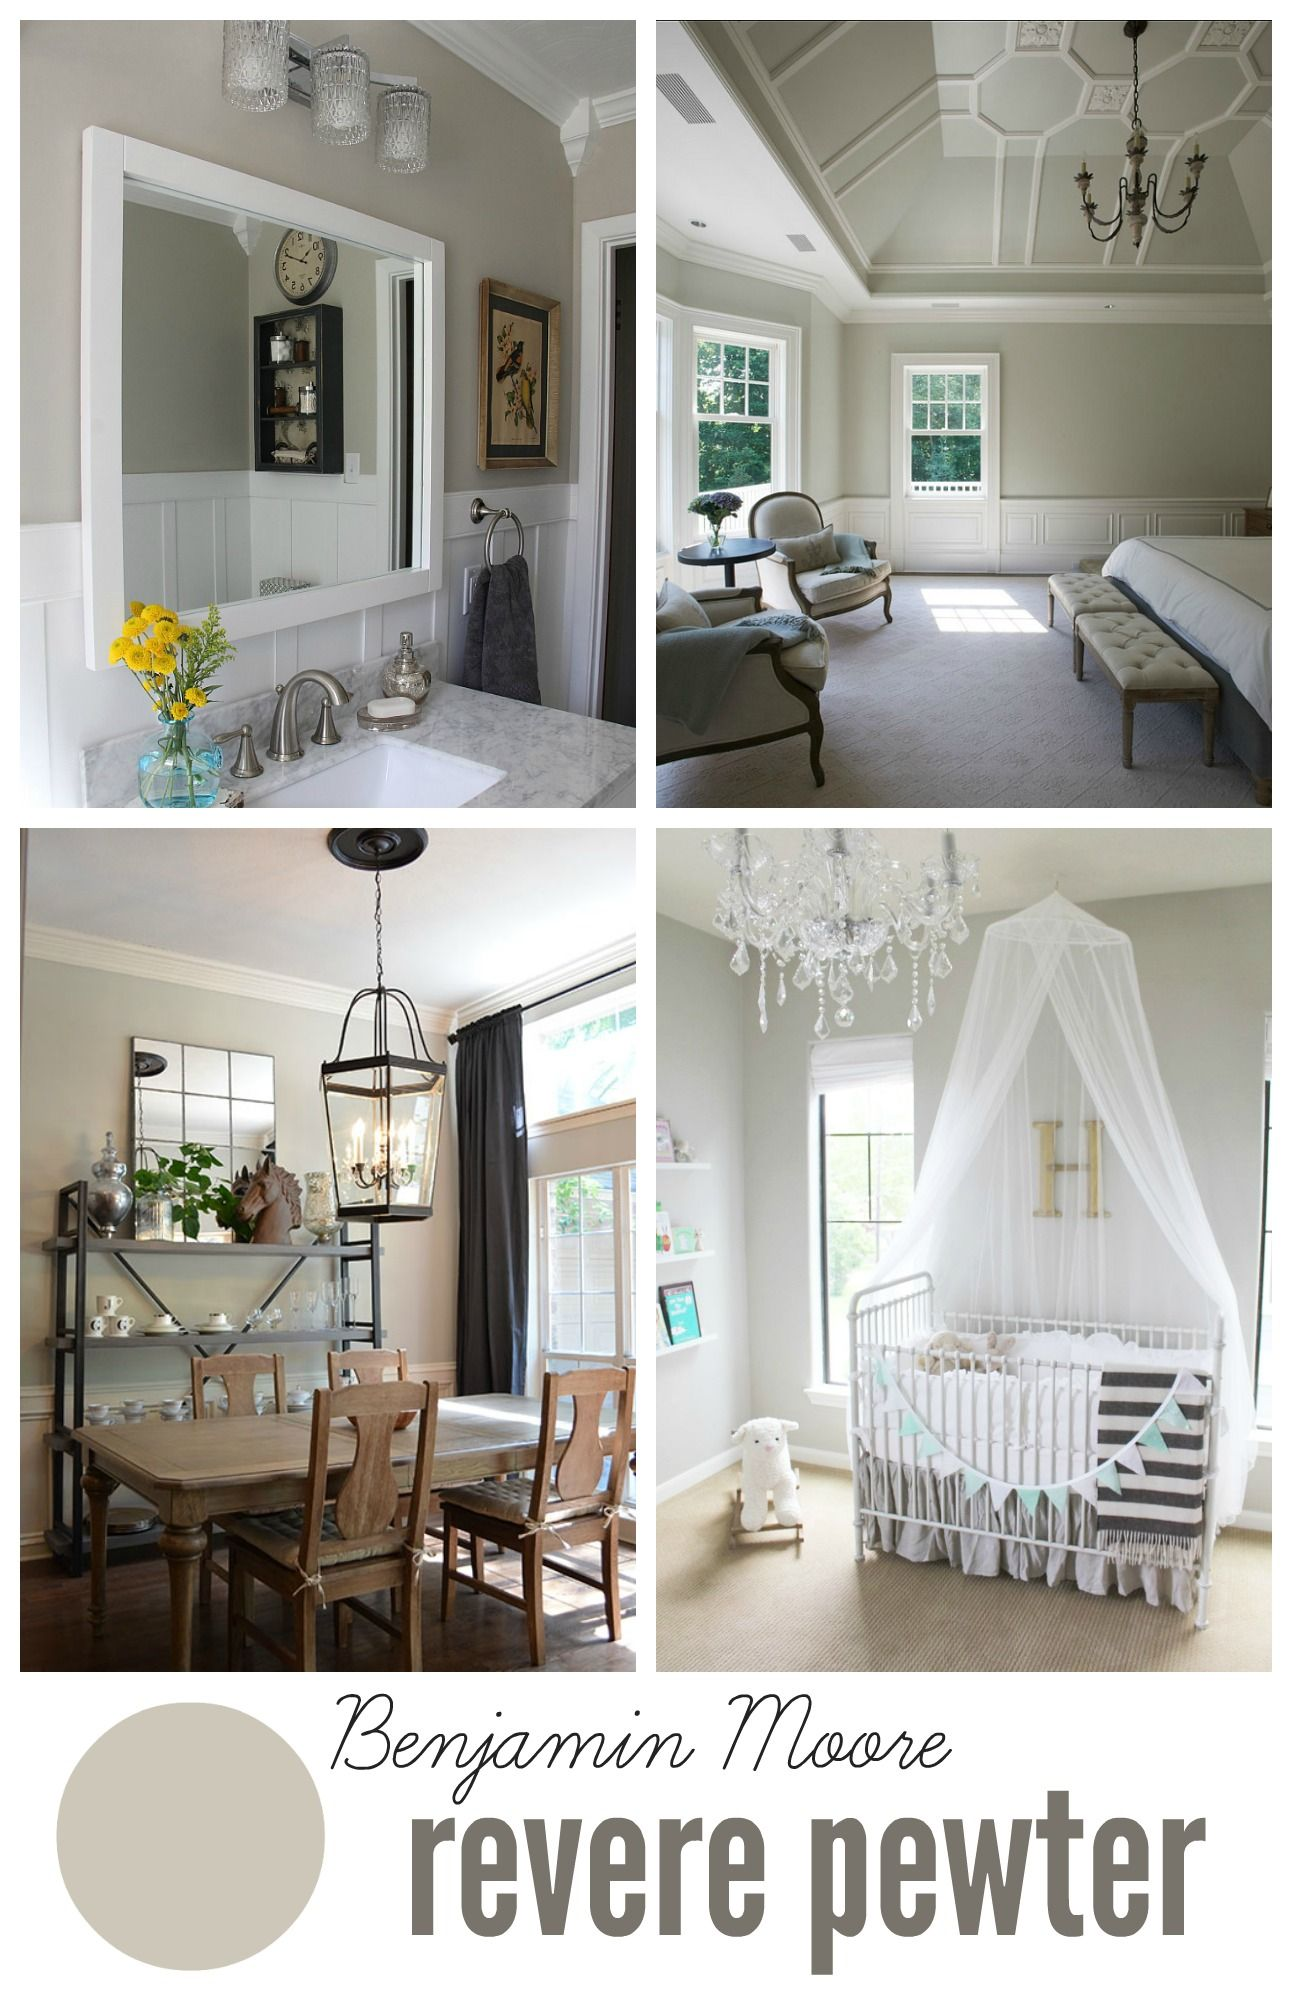 Benjamin Moore Revere Pewter Paint Colors For Home Revere Pewter Neutral Paint Colors #revere #pewter #living #room #ideas